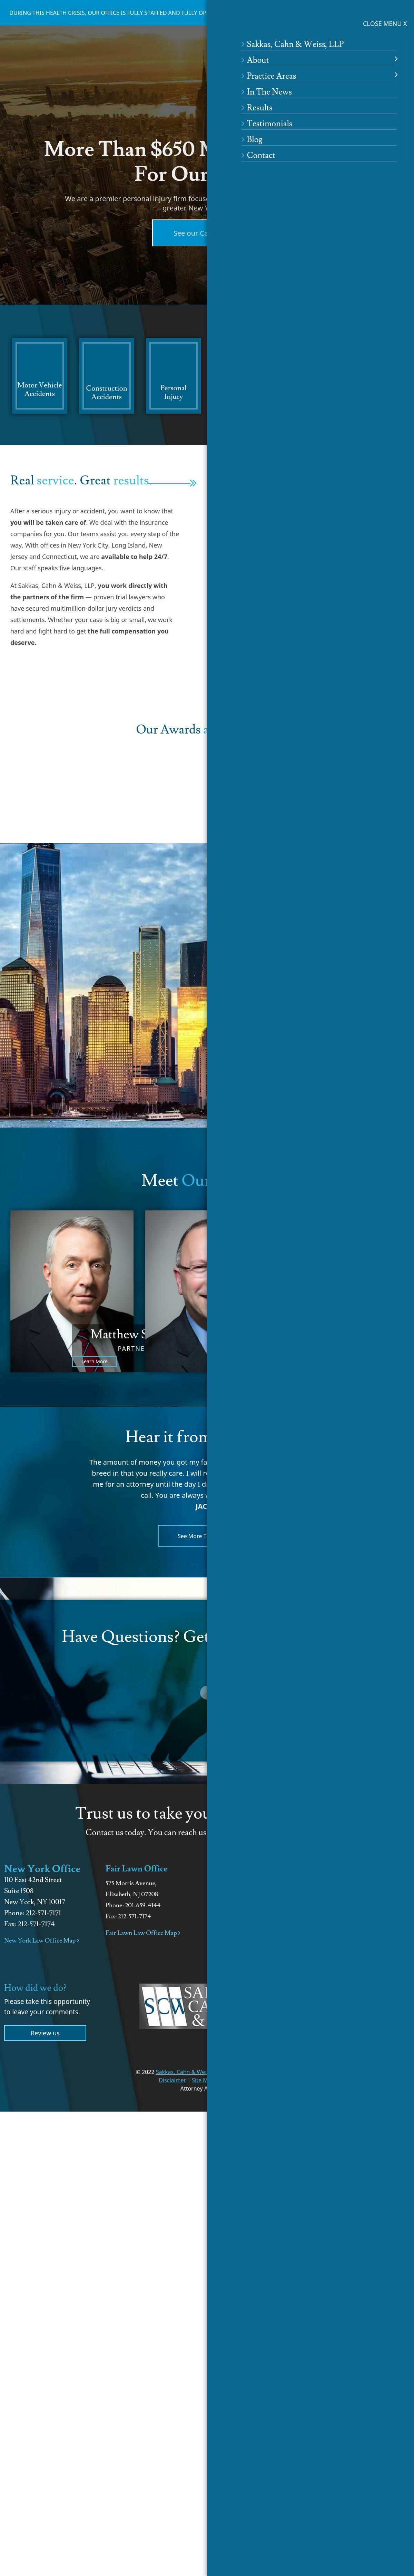 Sakkas, Cahn & Weiss, LLP - New York NY Lawyers